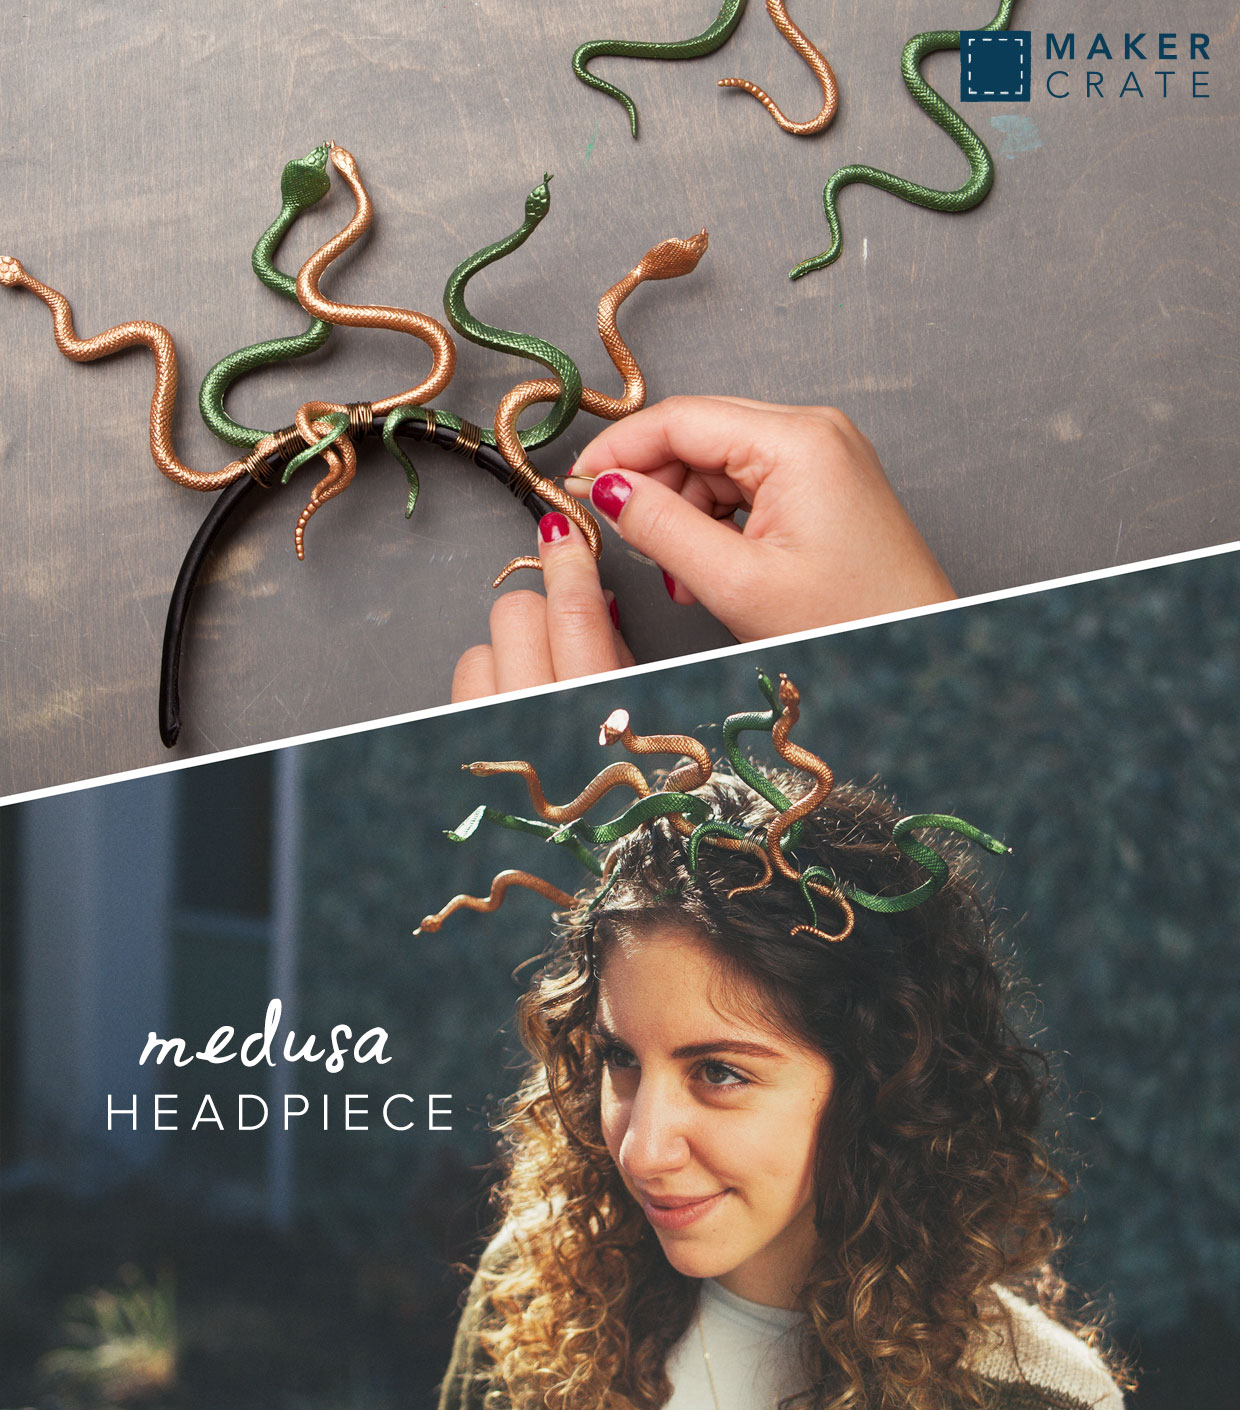 Youu0027re ready to slither along to your Halloween event!  sc 1 st  Maker Crate & Medusa Headpiece | Maker Crate